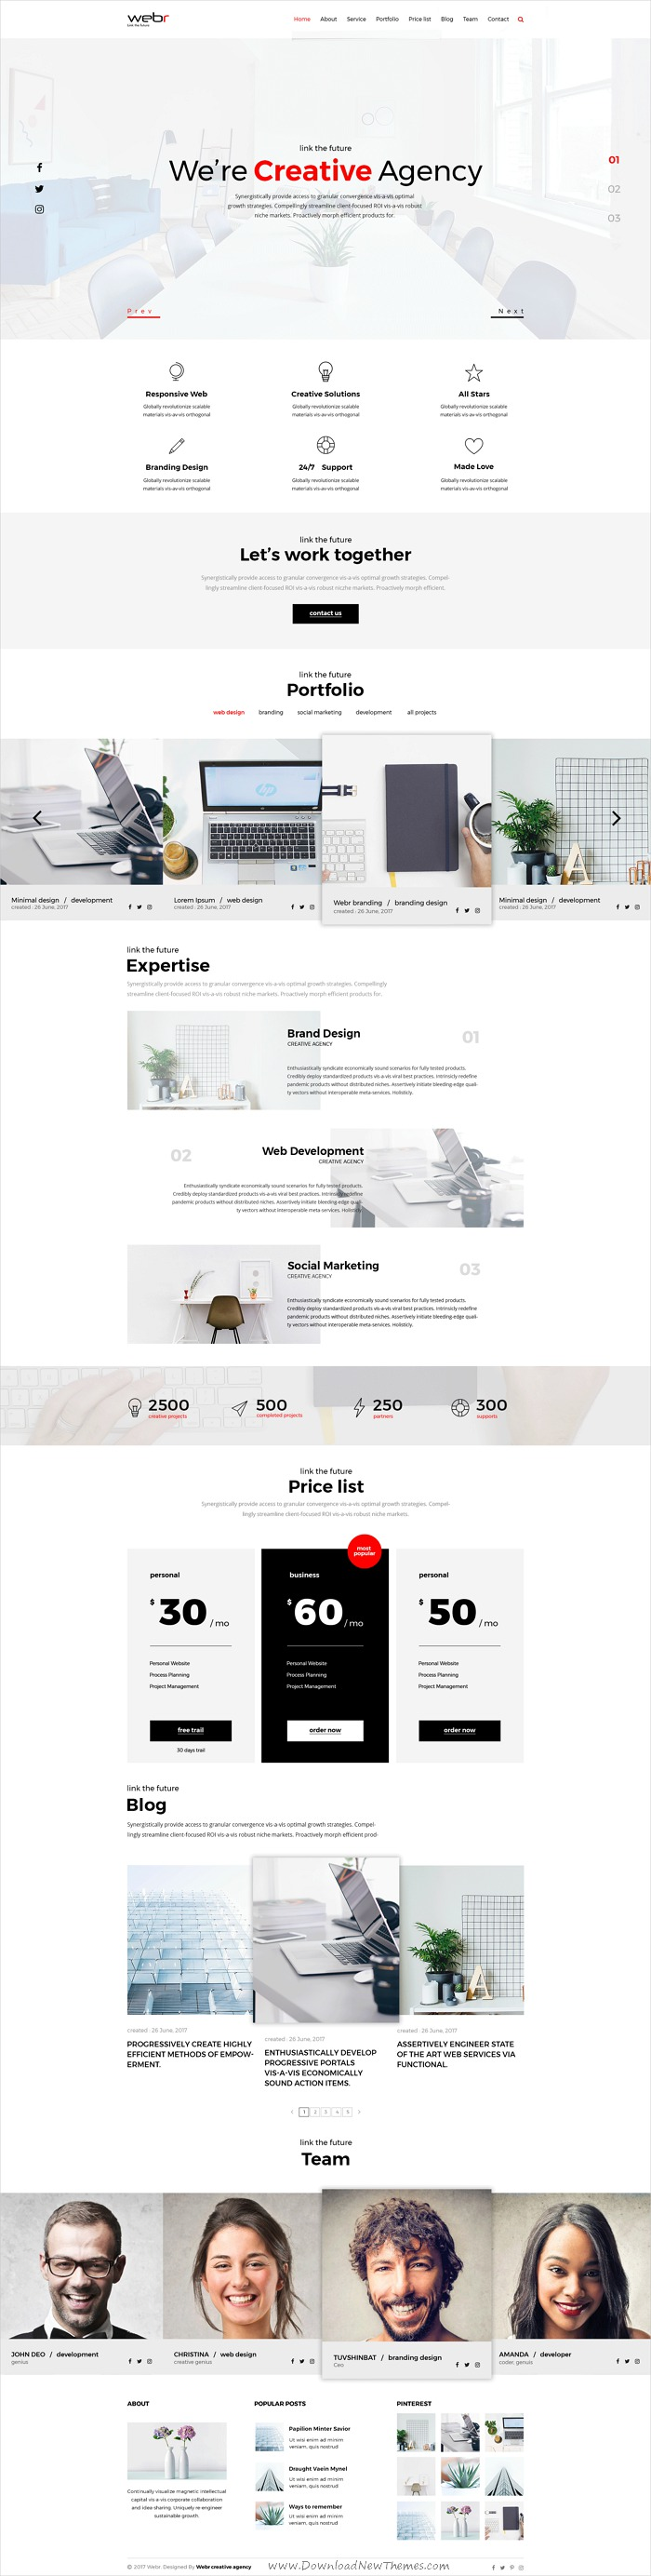 Webr is clean and modern design template for